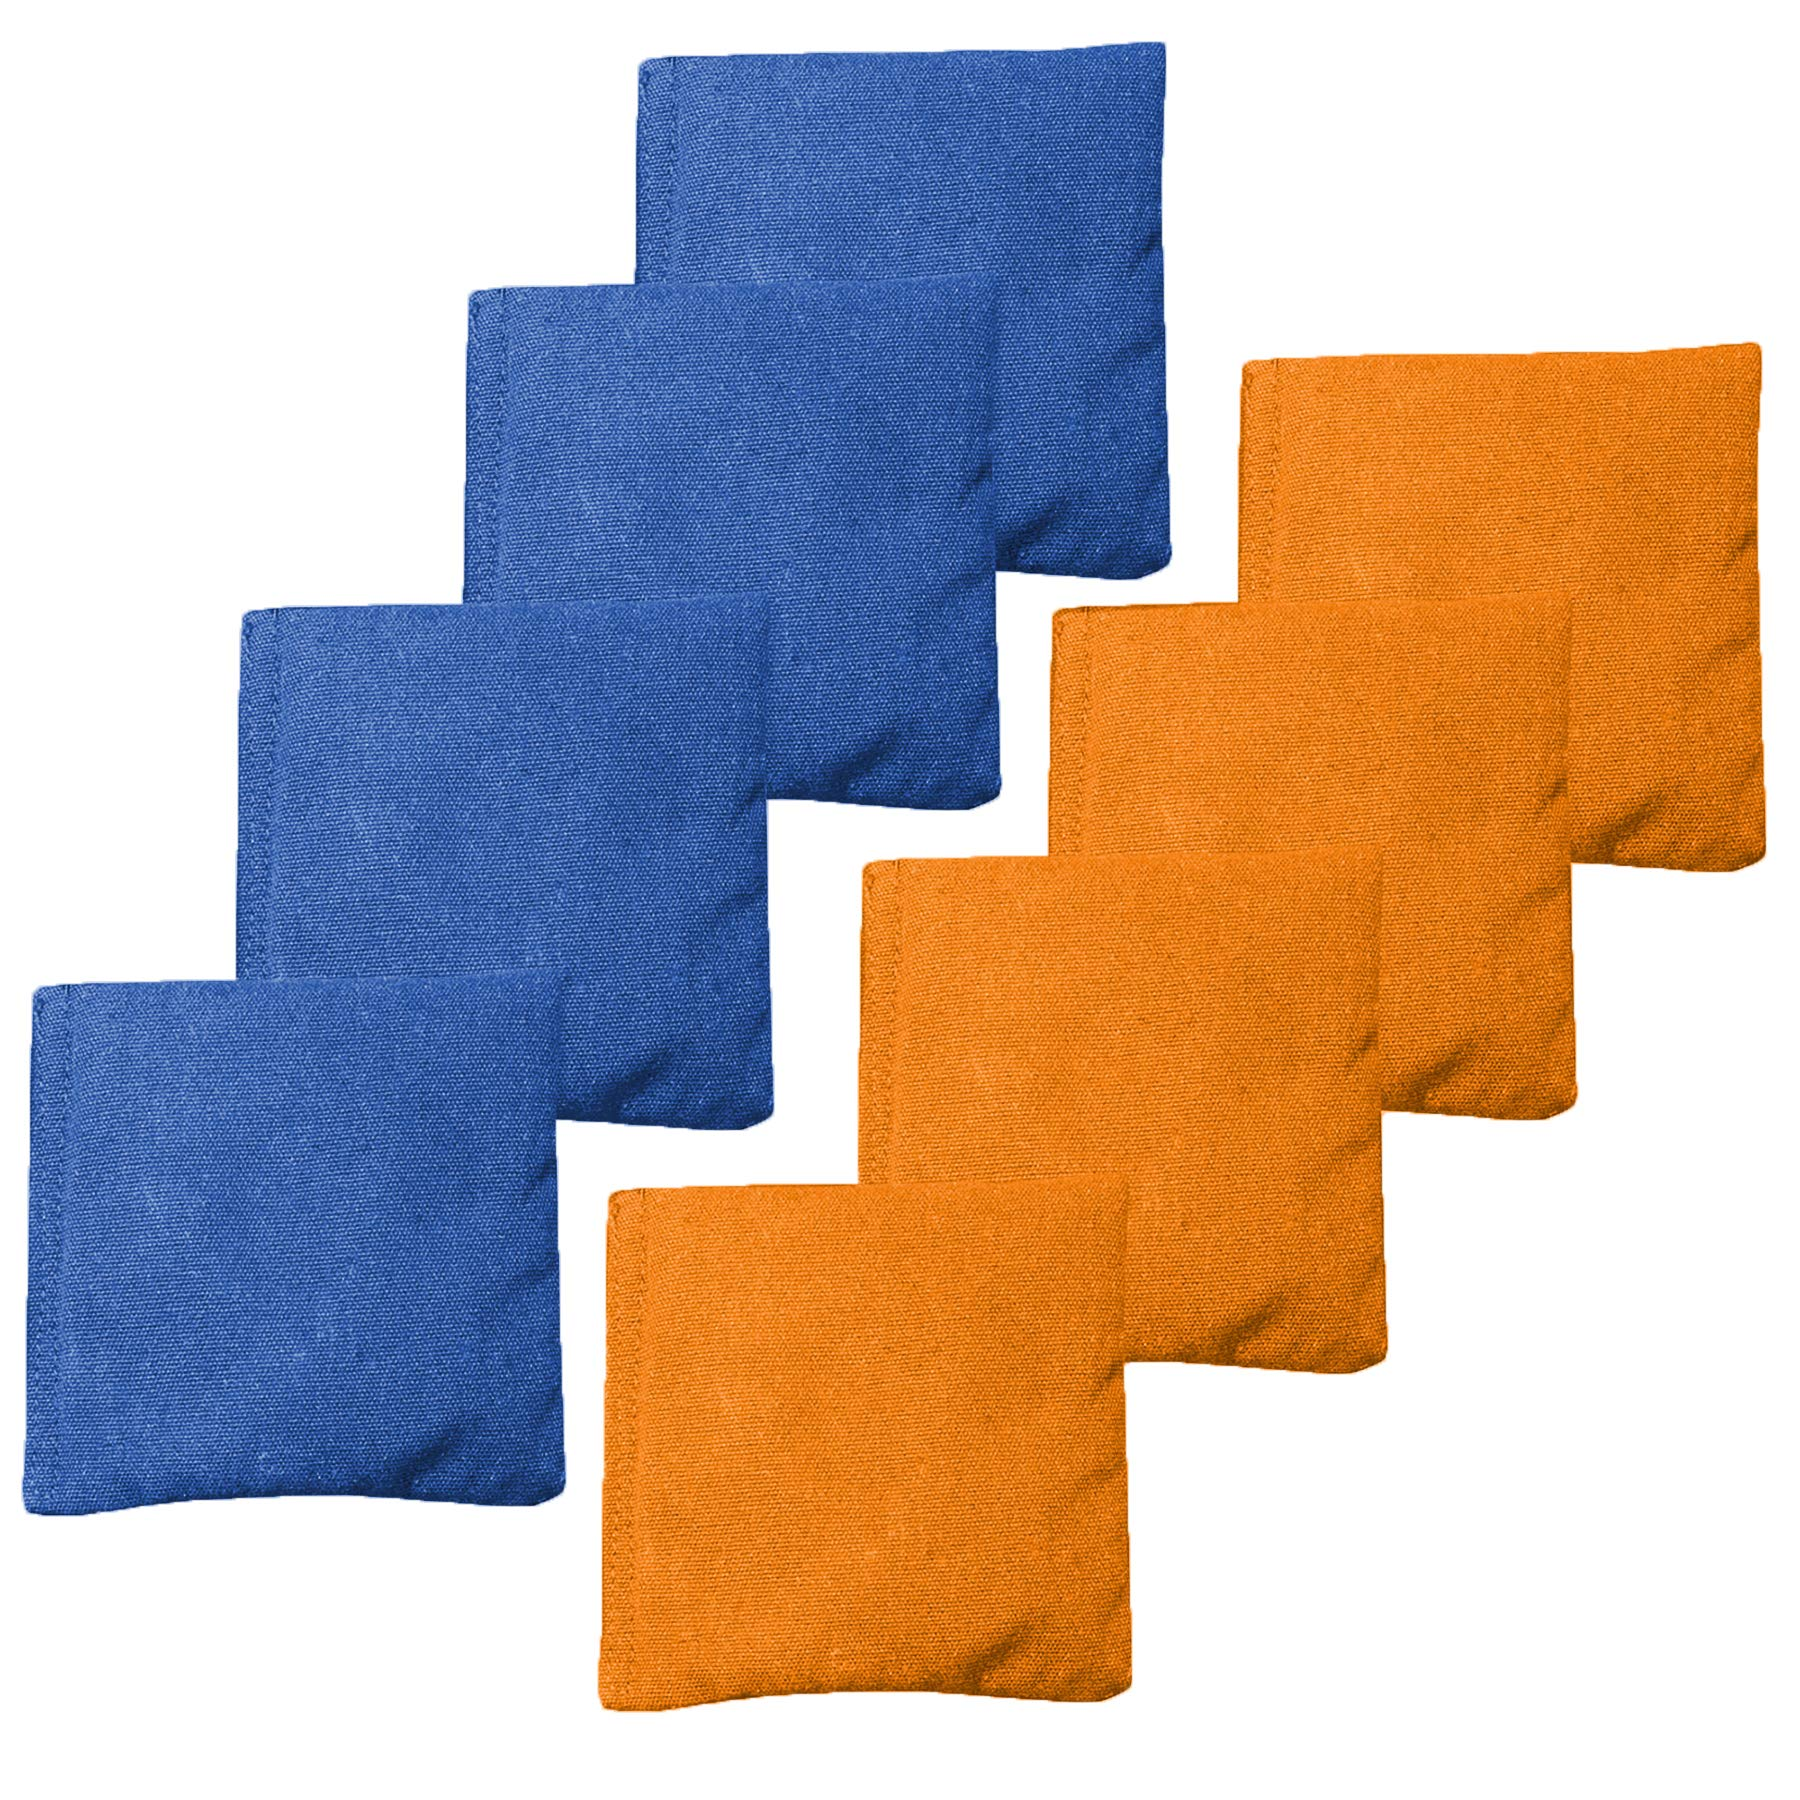 Play Platoon Weather Resistant Cornhole Bean Bags Set of 8 - Orange & Blue by Play Platoon